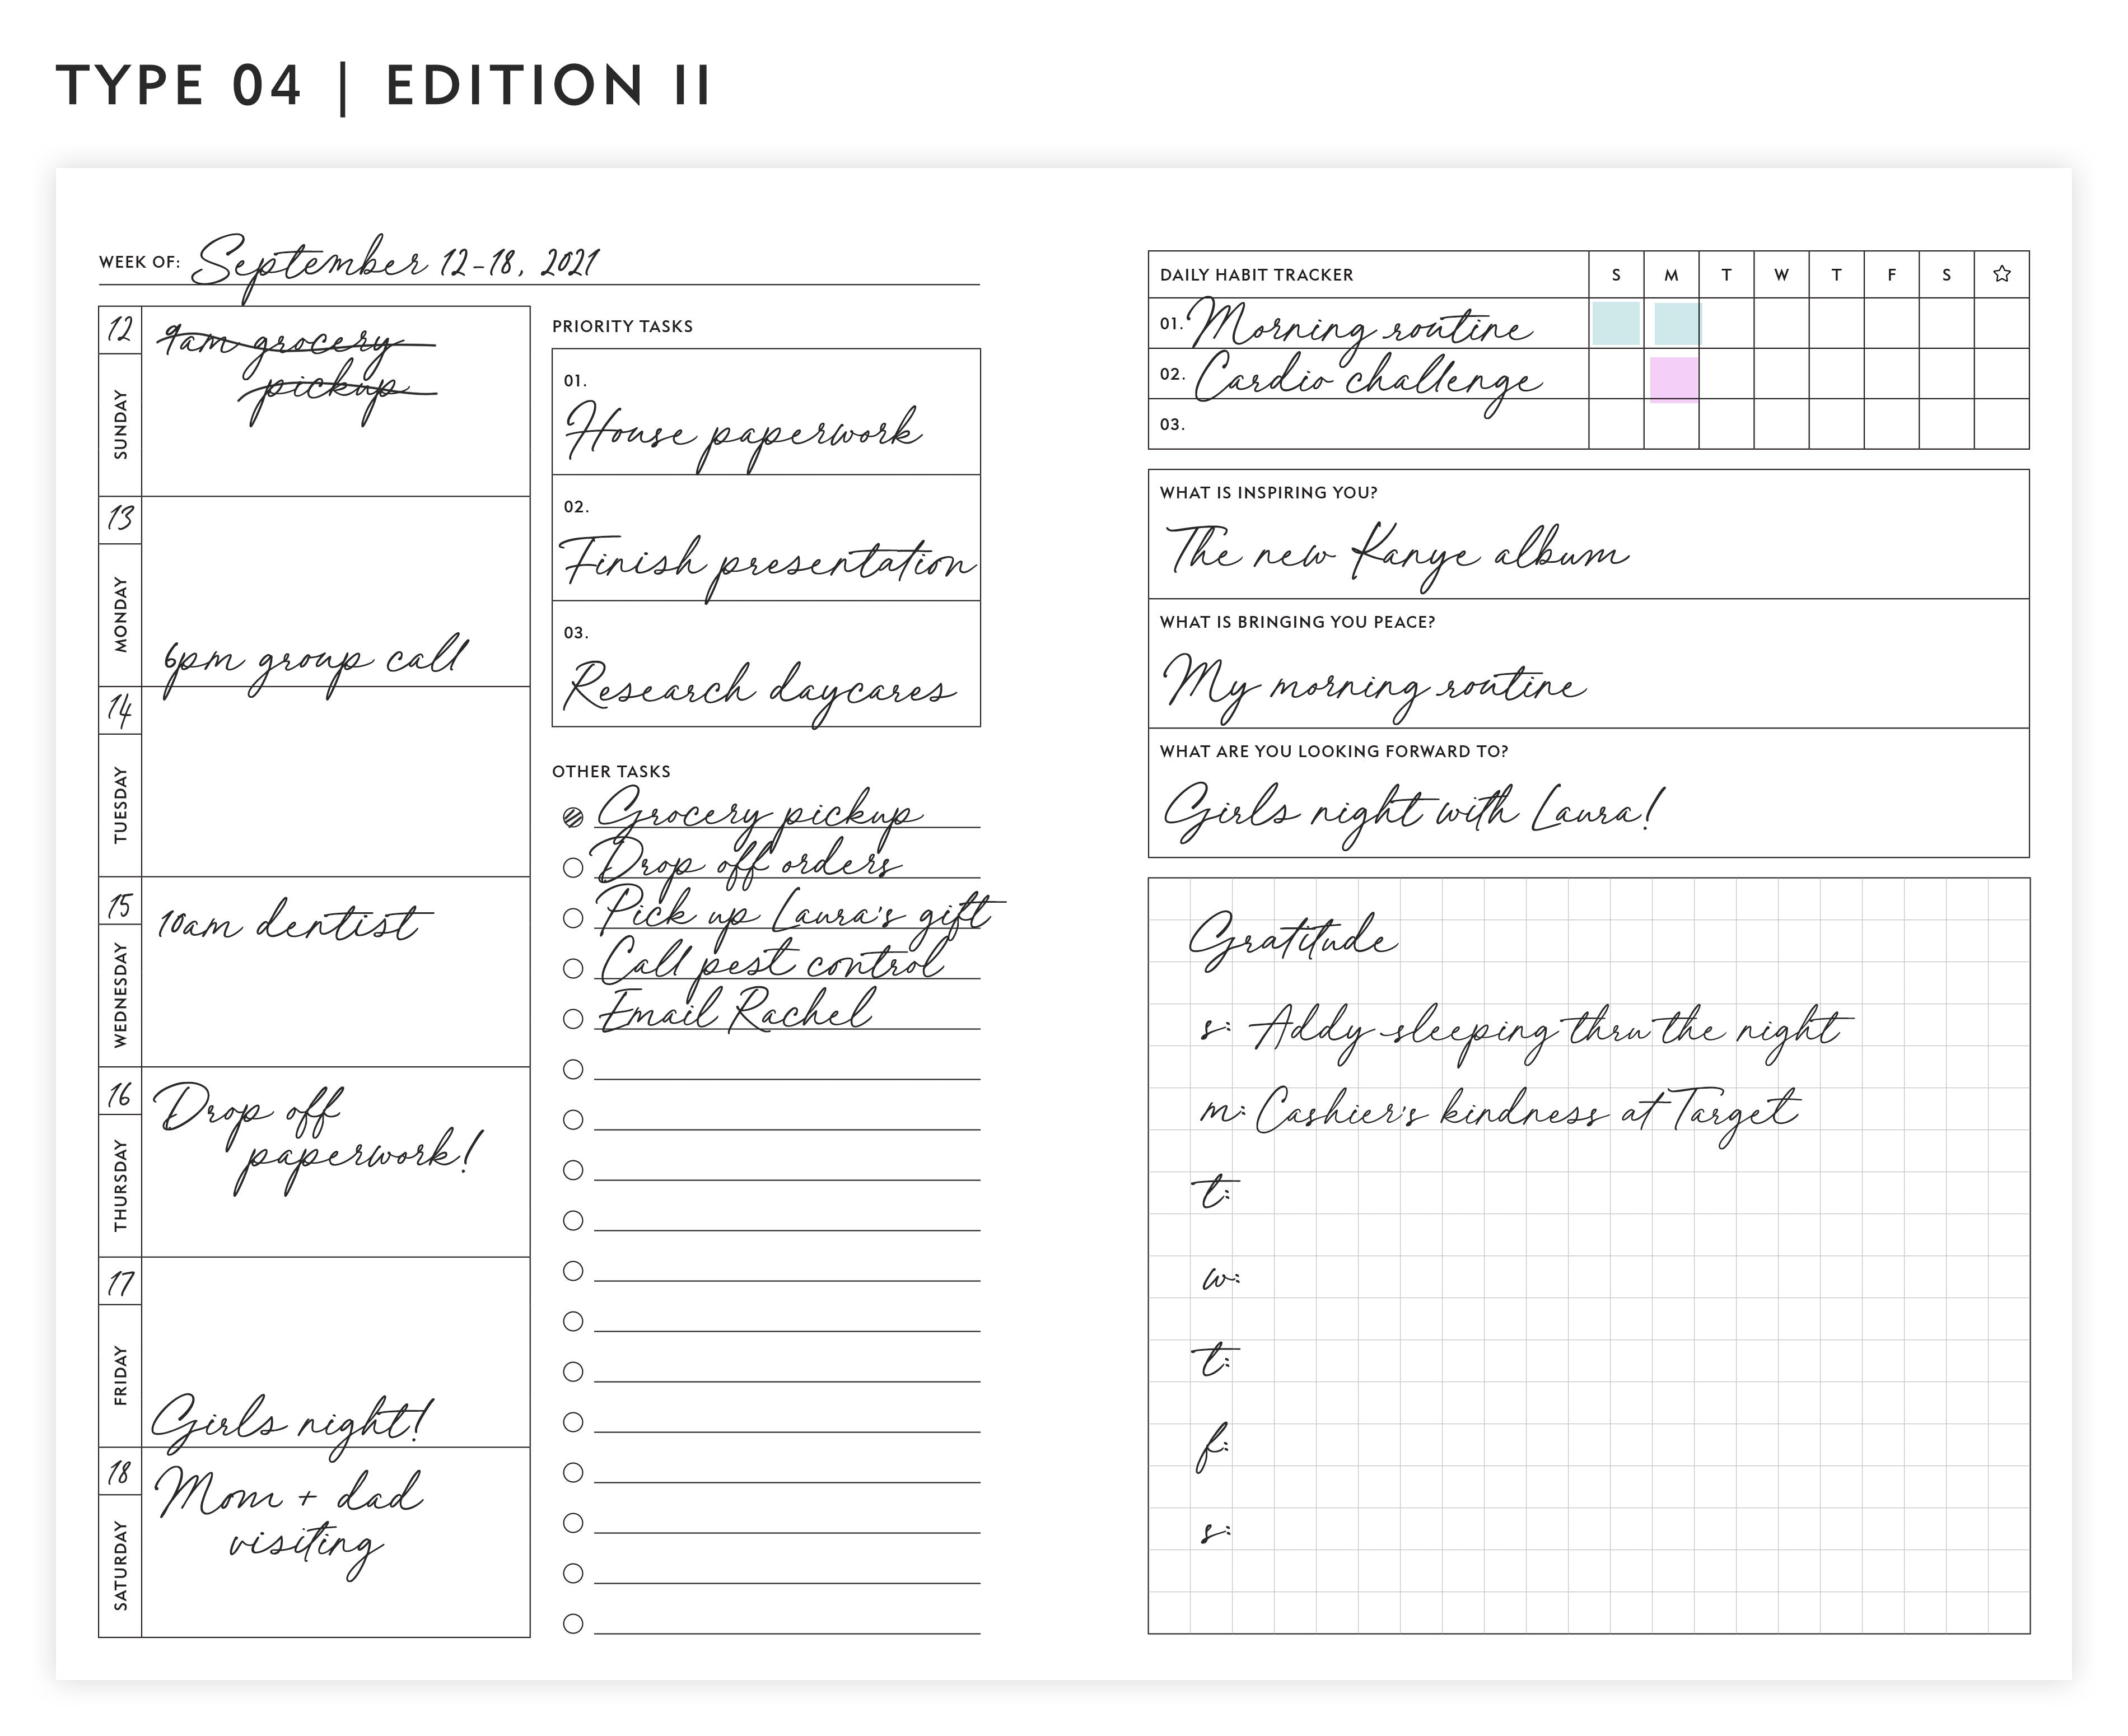 Guided Enneagram Planner Type 04   Edition II